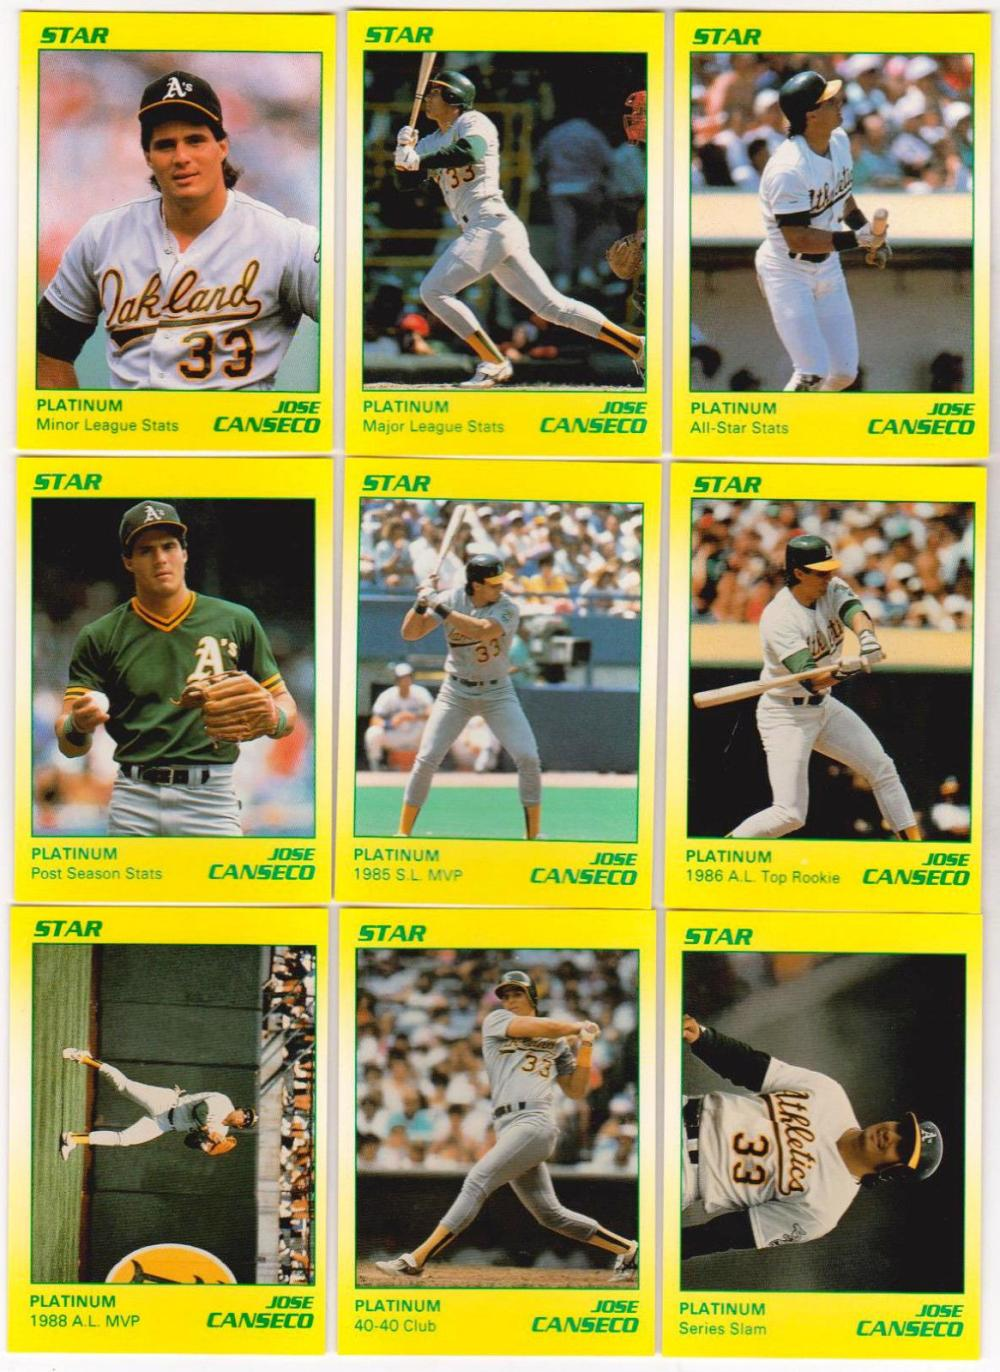 1990 Star Platinum Jose Canseco 9 Card Set - Only 1000 Sets Produced